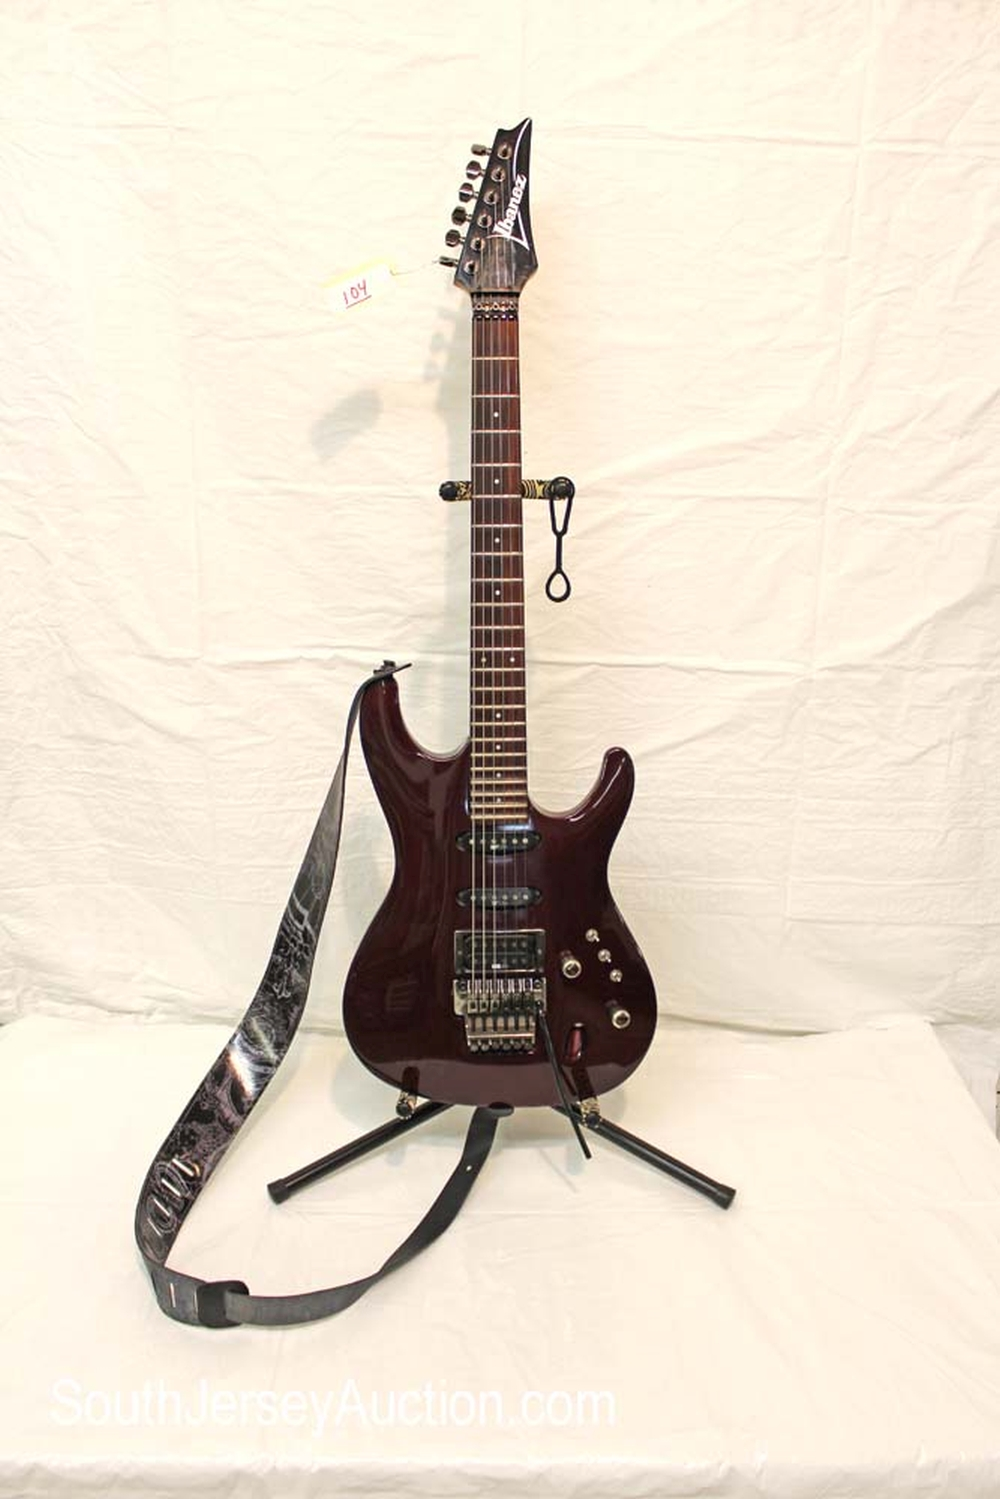 1988 Ibanez RG 550 Floyd Rose trim guitar, made in Japan, assembled in US, thin wizard special neck, s/n 880550 with strap, all original, very good condition